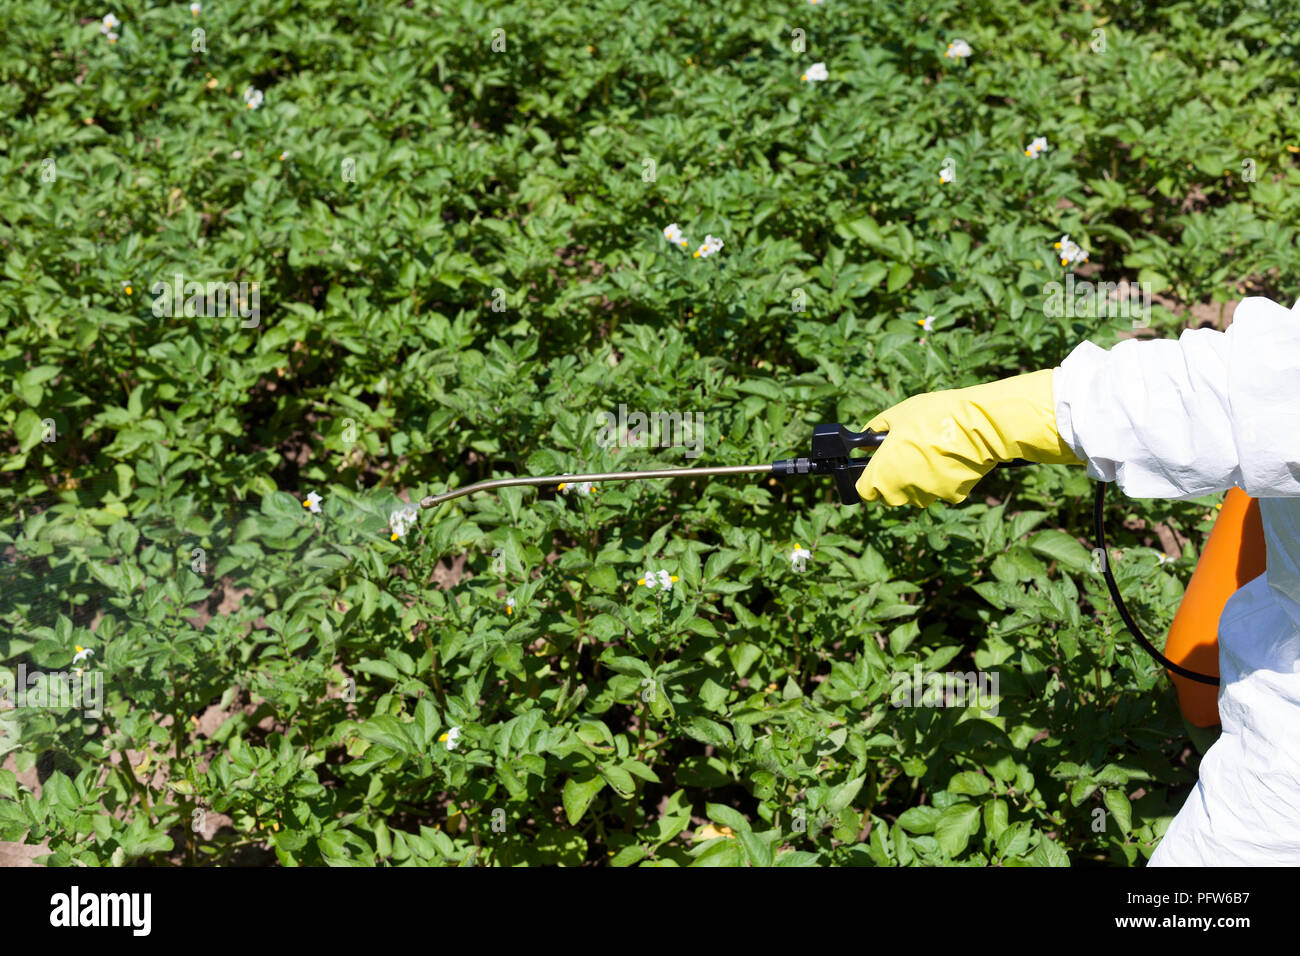 Farmer spraying vegetables with pesticides - Stock Image